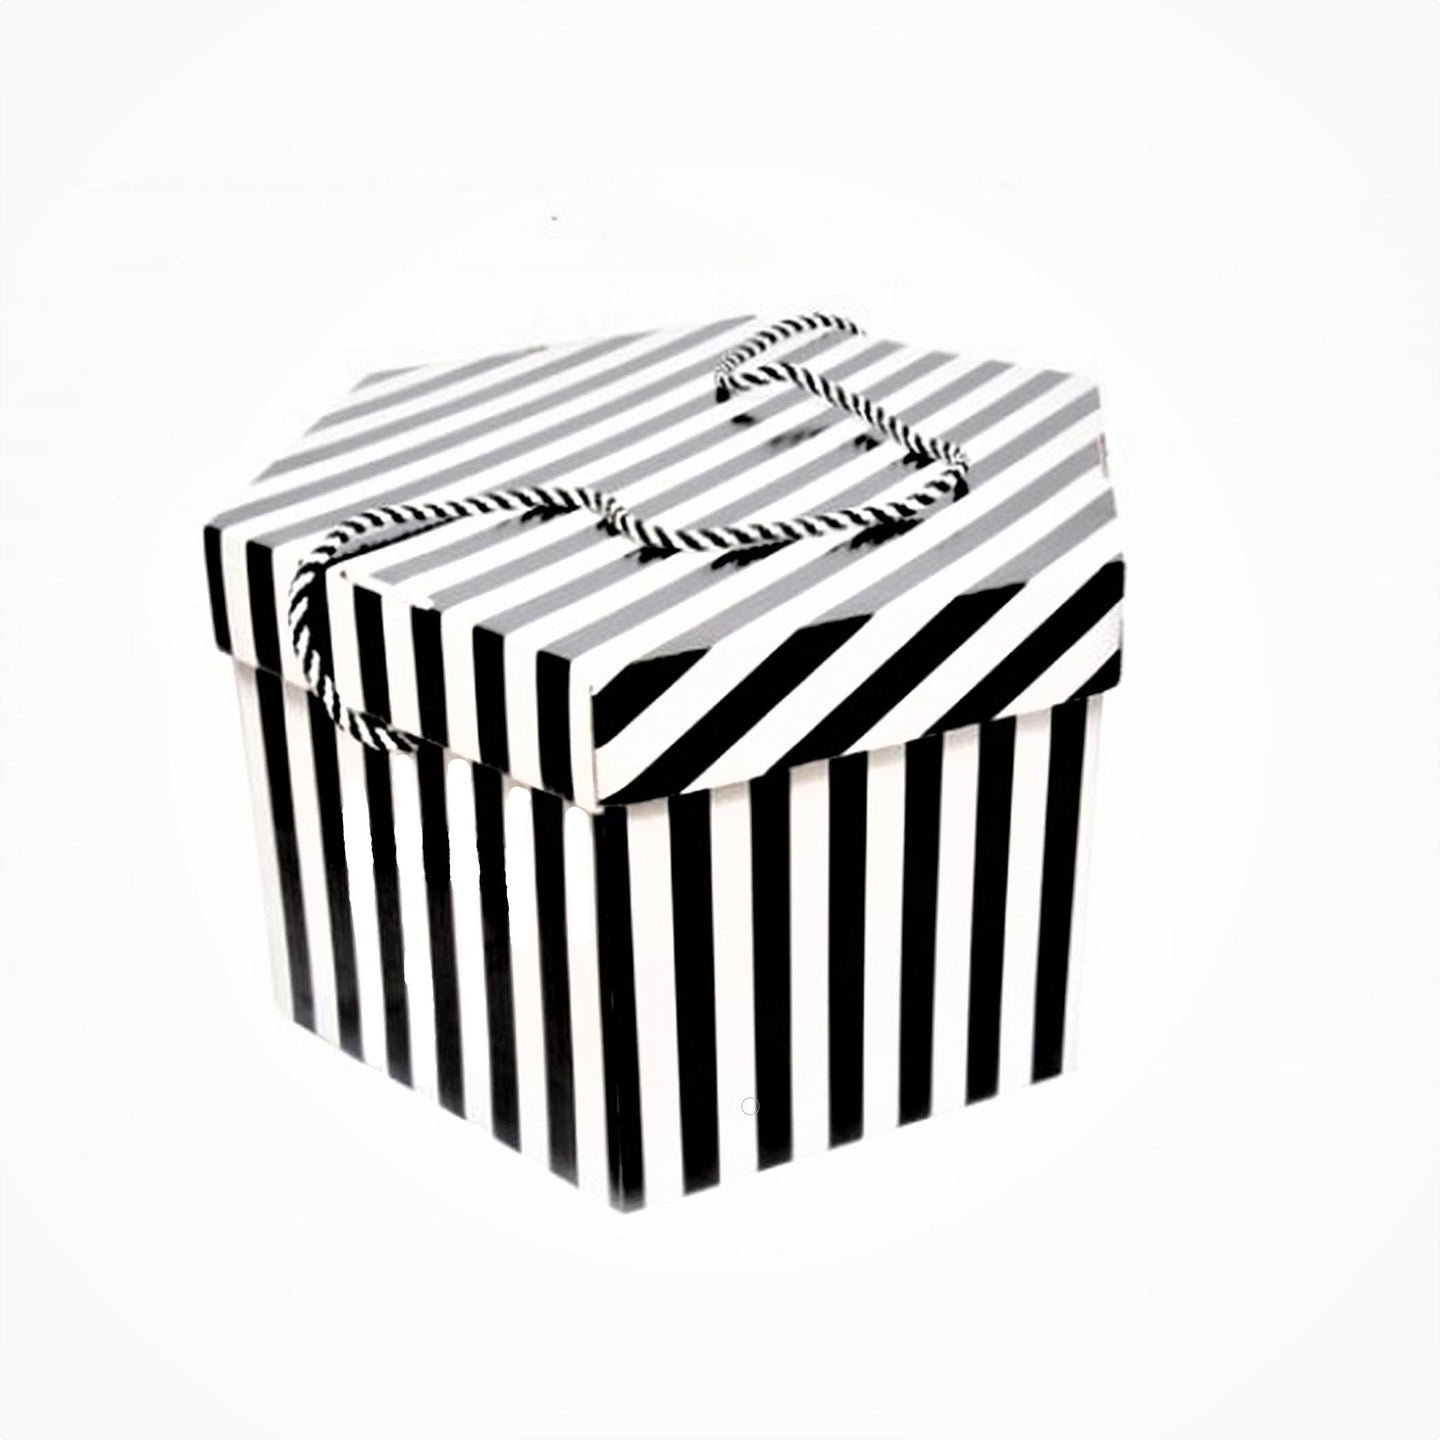 12pcs of 60cm candy stripe hat box for millinery fascinators wedding hats HB060